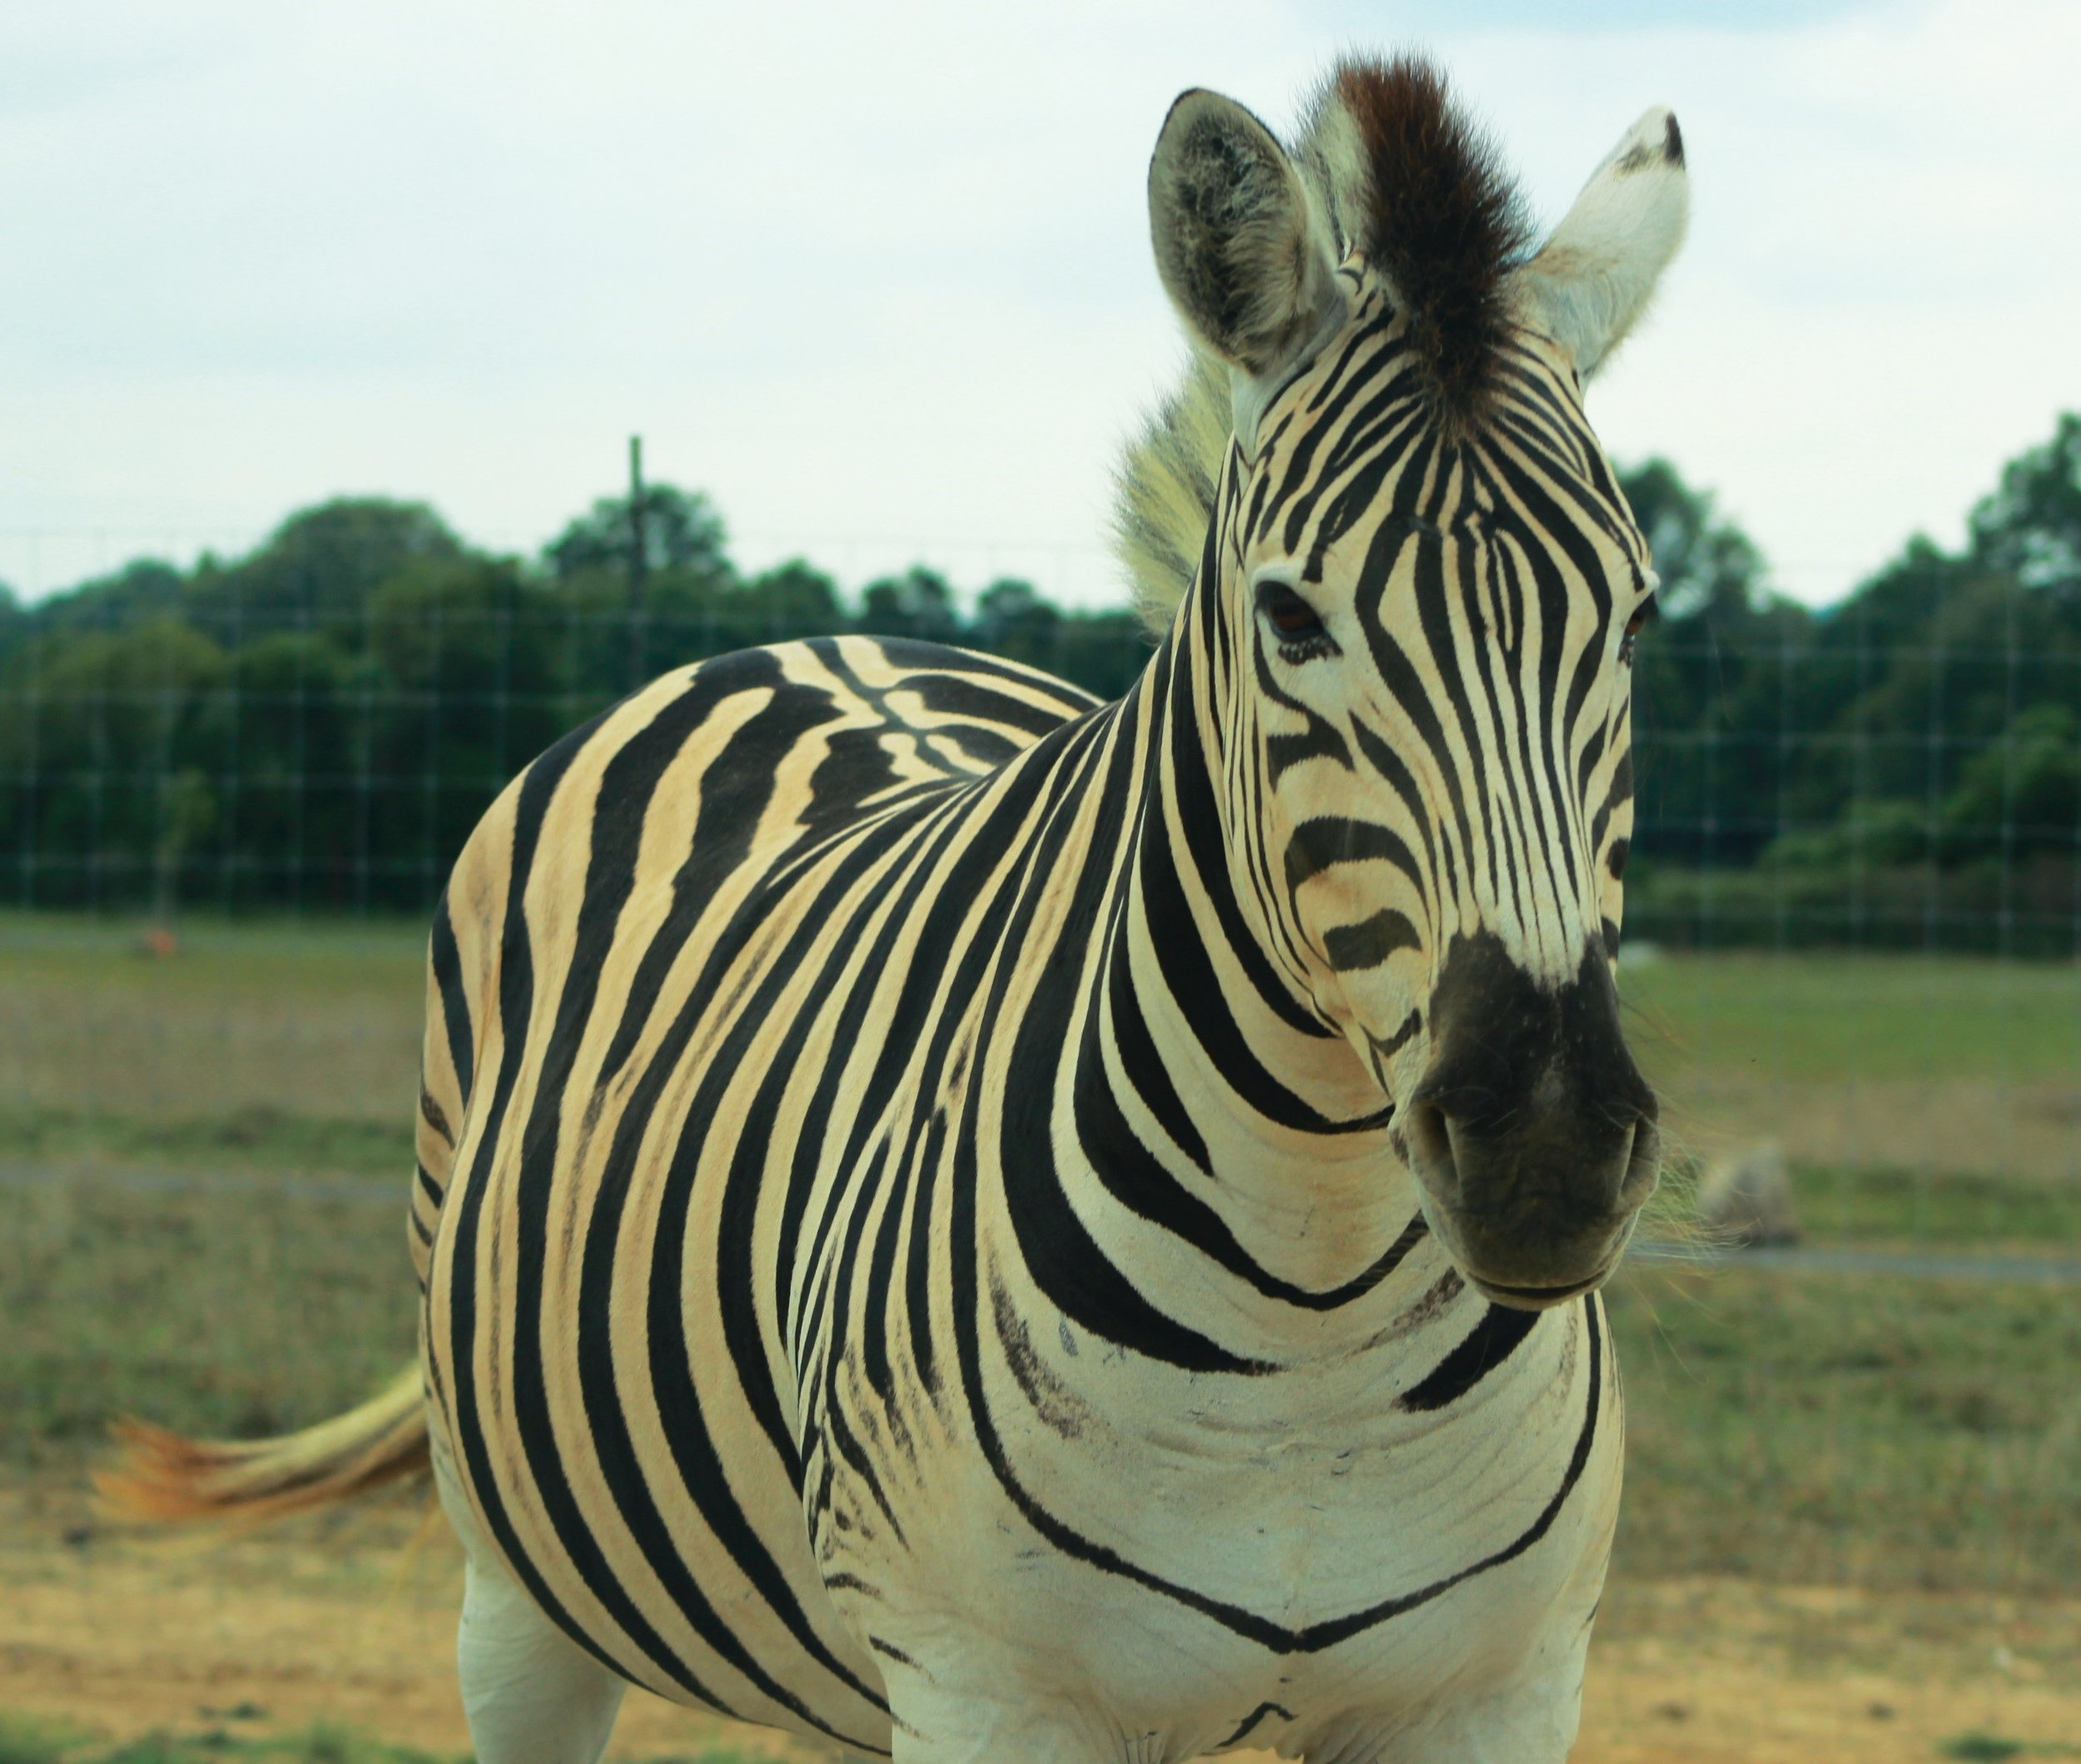 If you've ever seen the movie  Racing Stripes  then you may recognize the park's very own striped movie star.